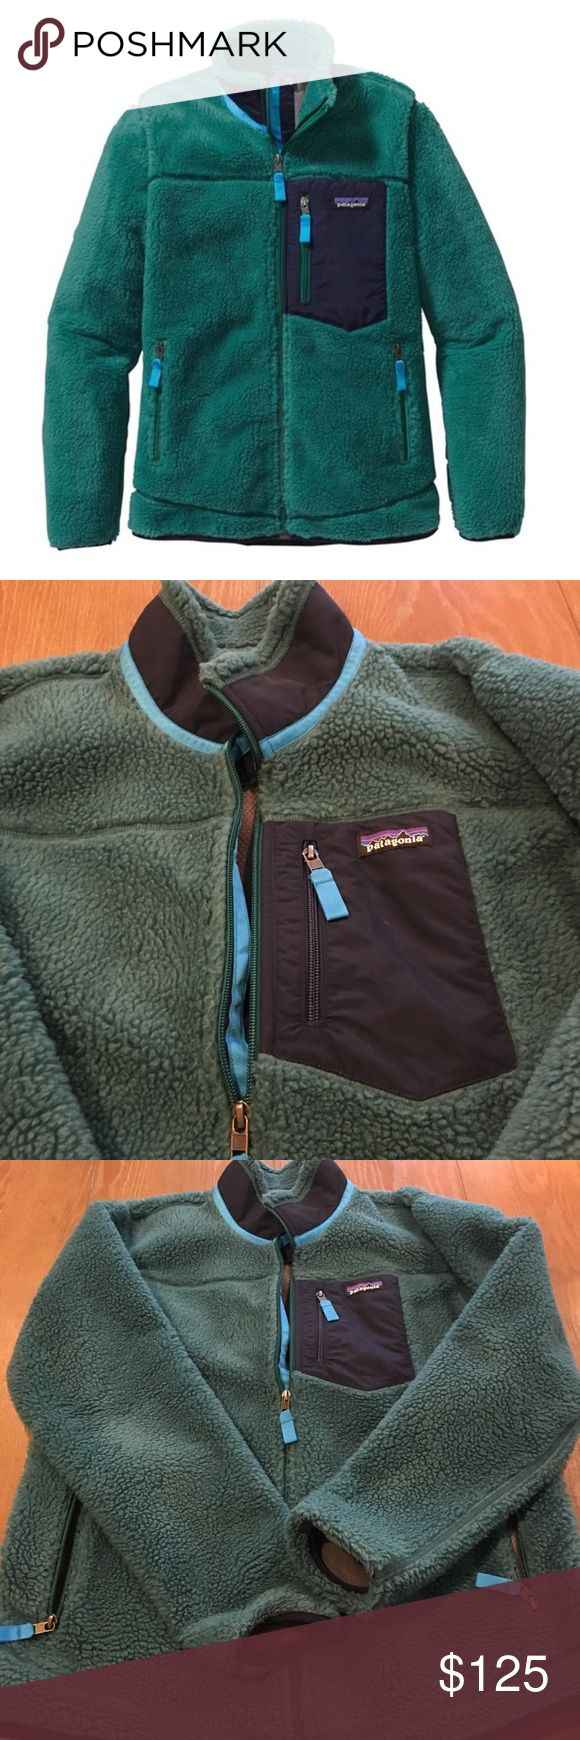 LIKE NEW Patagonia Classic Retro Fleece Jacket LIKE NEW (worn maybe 1-2 times, no change to fleece under the arms as can be seen in photos) women's Patagonia Classic Retro-X Fleece Jacket. This GORGEOUS arbor green and navy jacket blocks out all the wind without all the bulk! Perfect for fall all he way through spring, the jacket has multiple pockets and will keep you looking sharp. Size XL. Need out of my closet-give this ALMOST BRAND NEW jacket a new home!! Patagonia Jackets & Coats